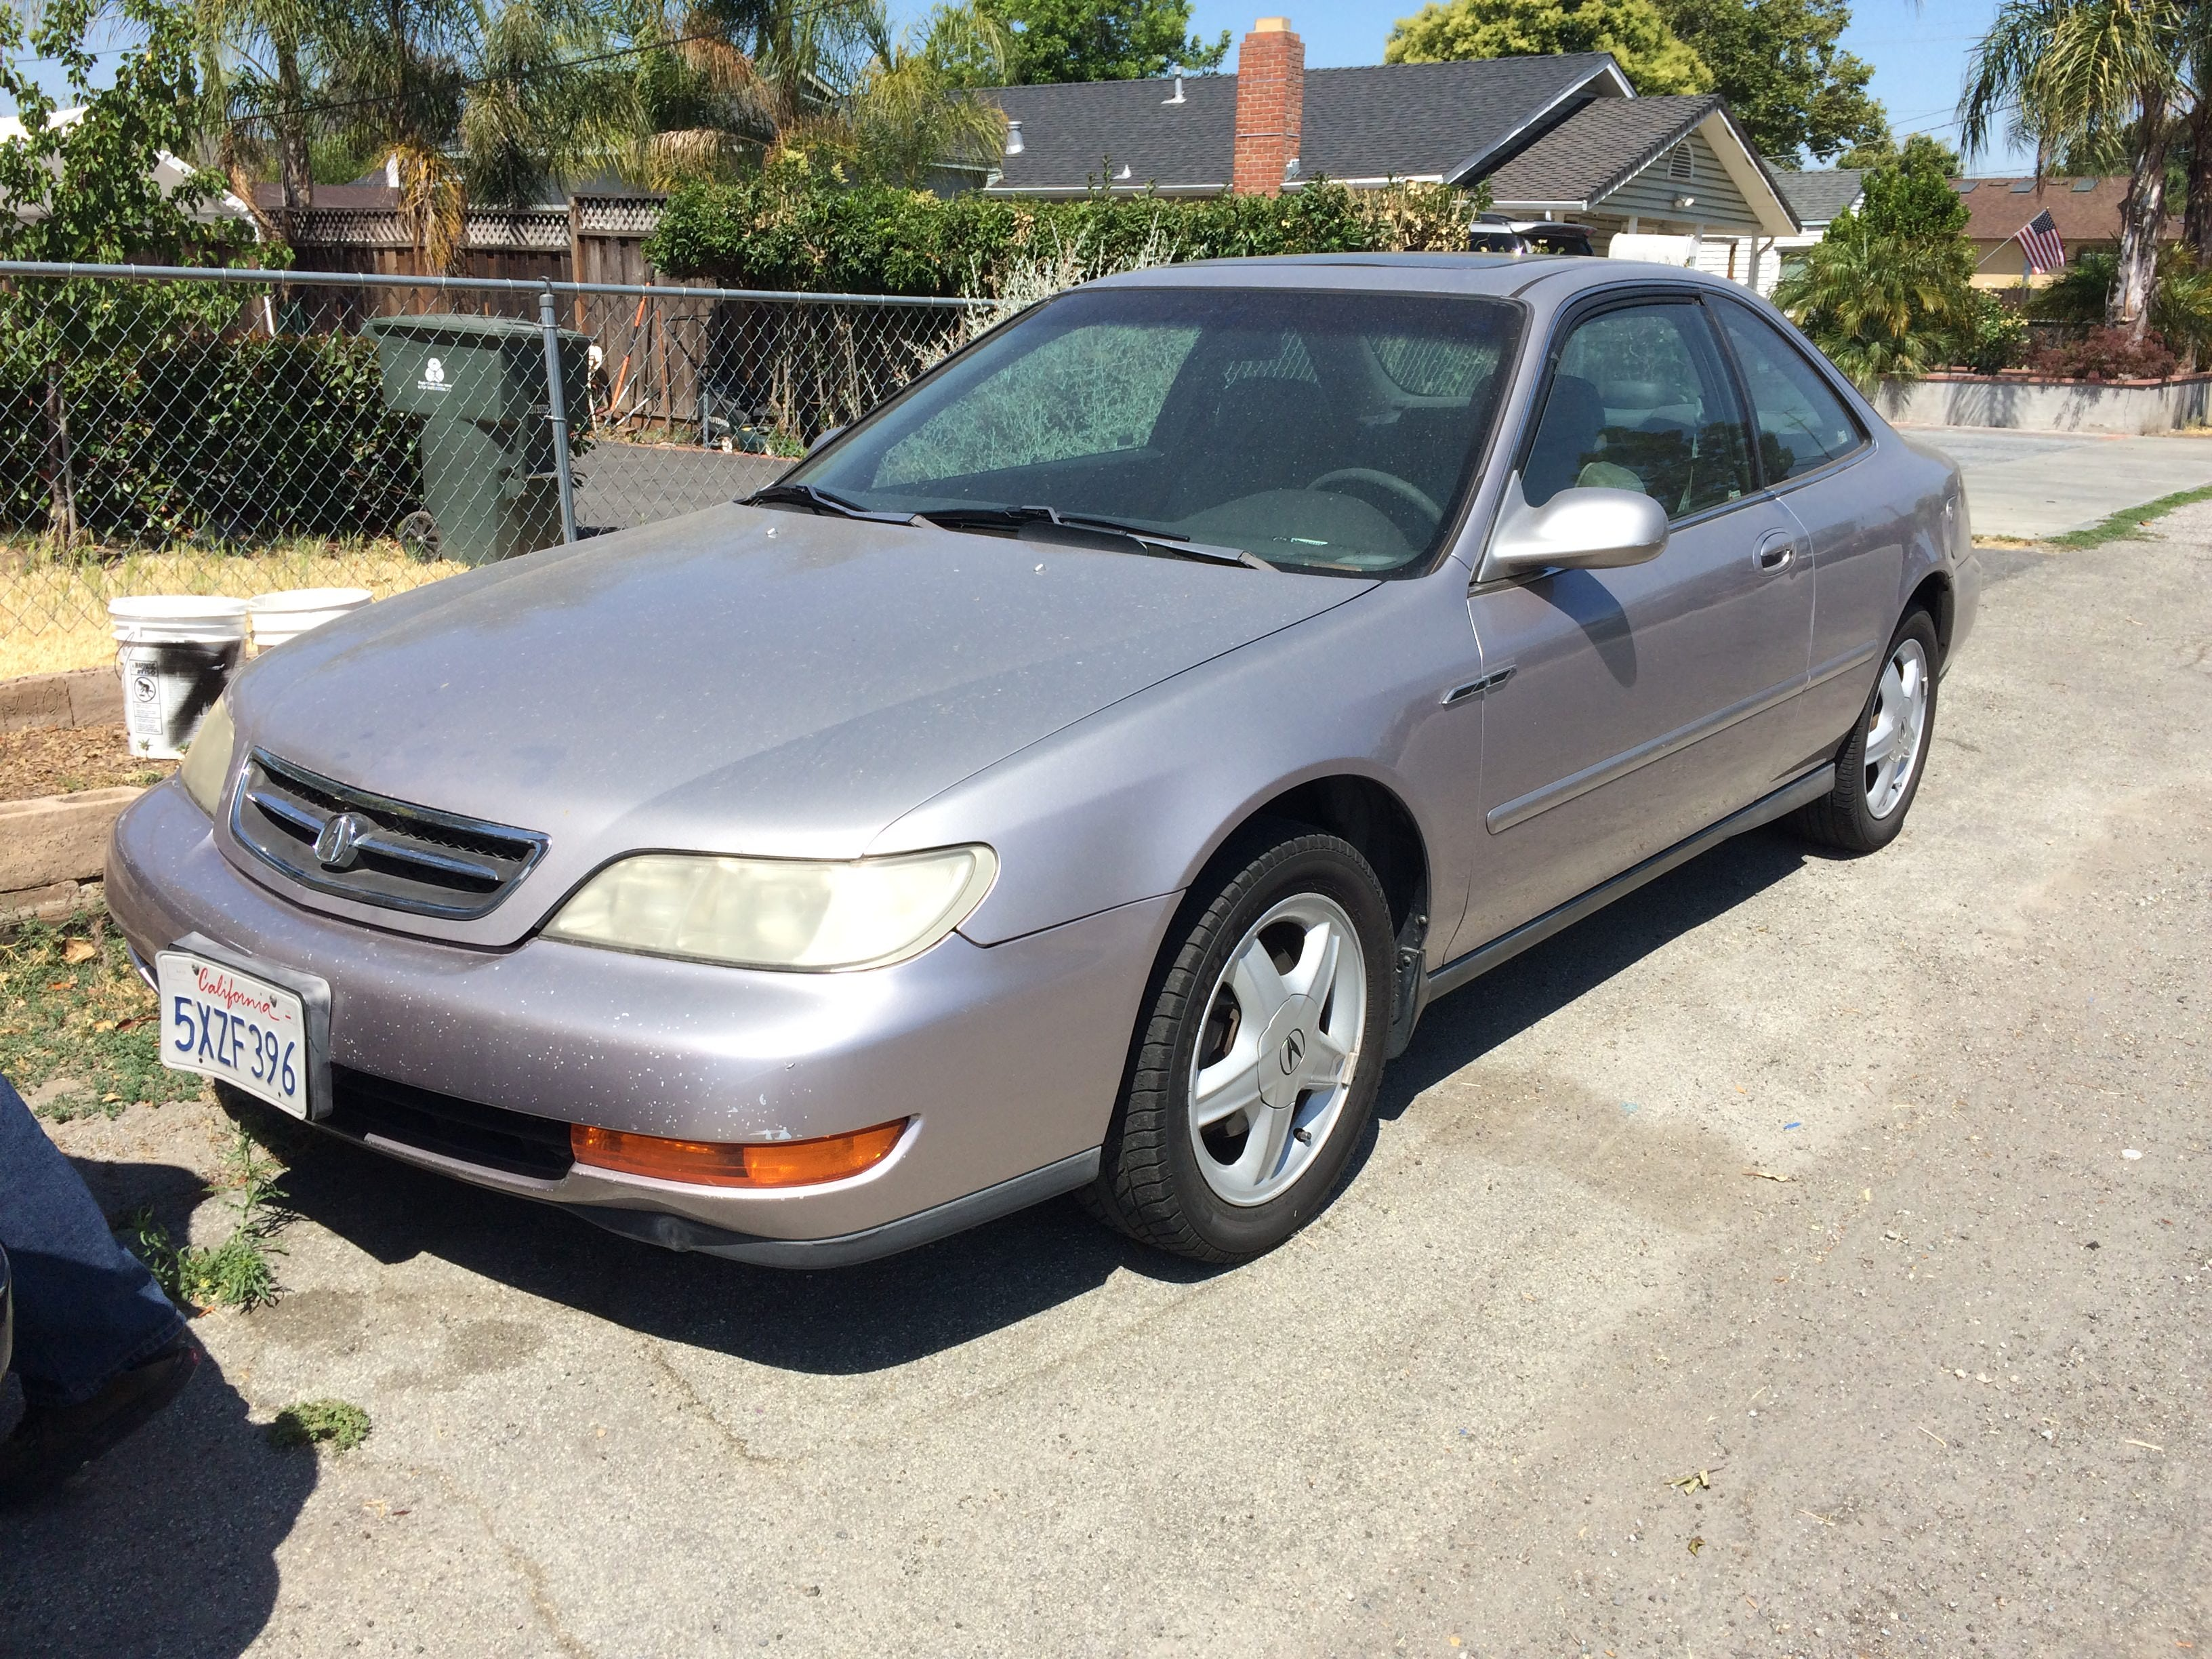 Junk 1997 Acura 3.0CL in San Jose